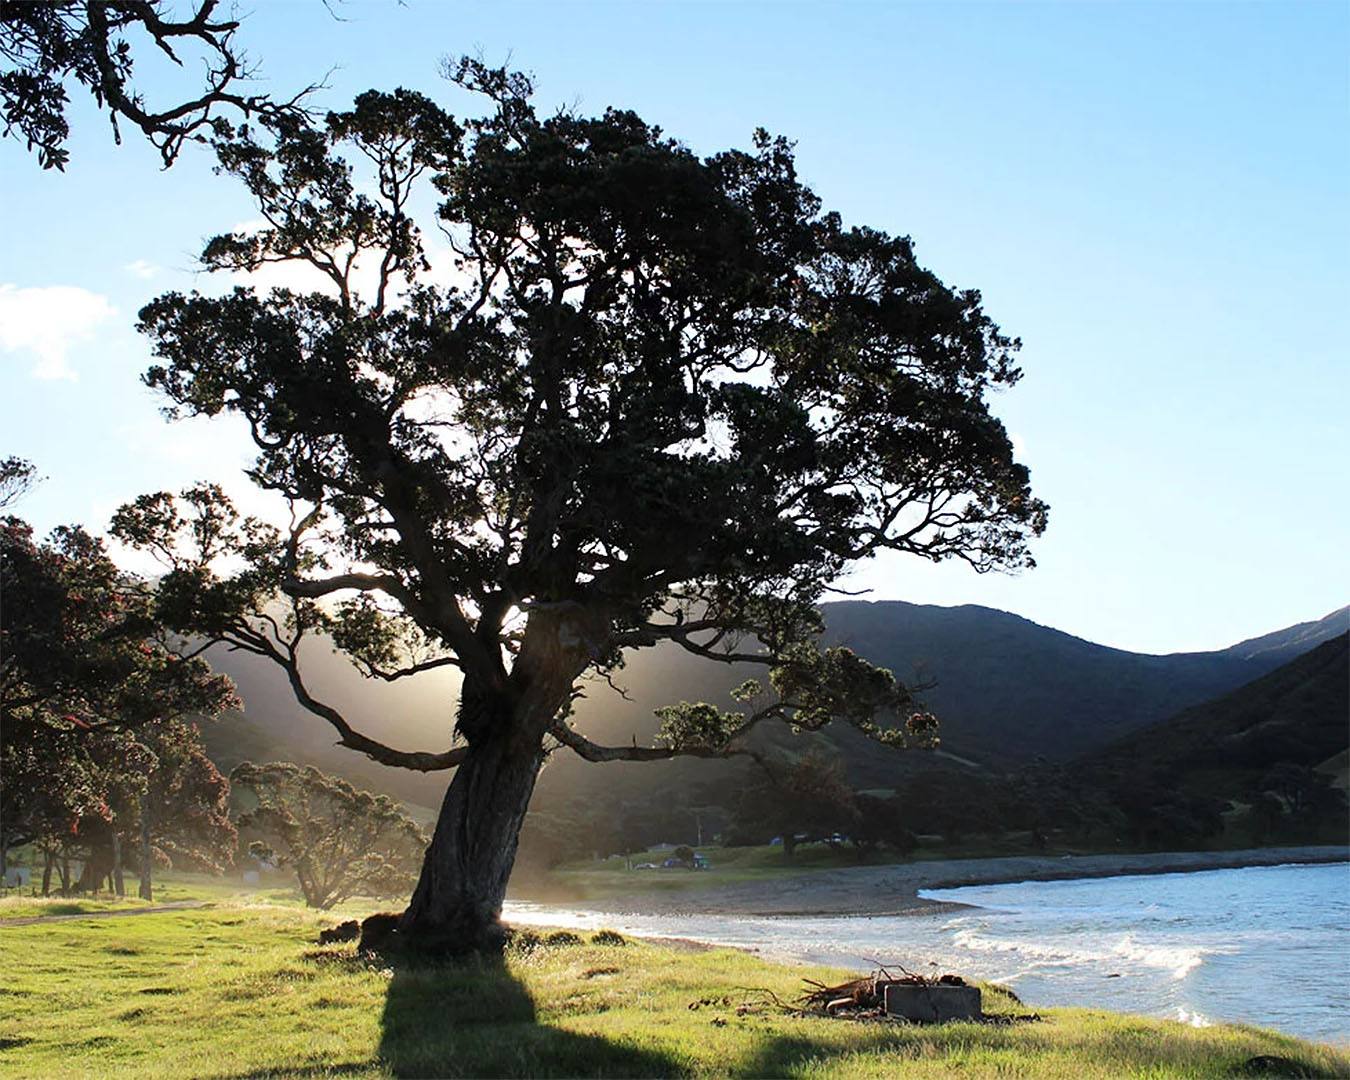 A lone tree at Stony bay, one of the best campsites on the coromandel.